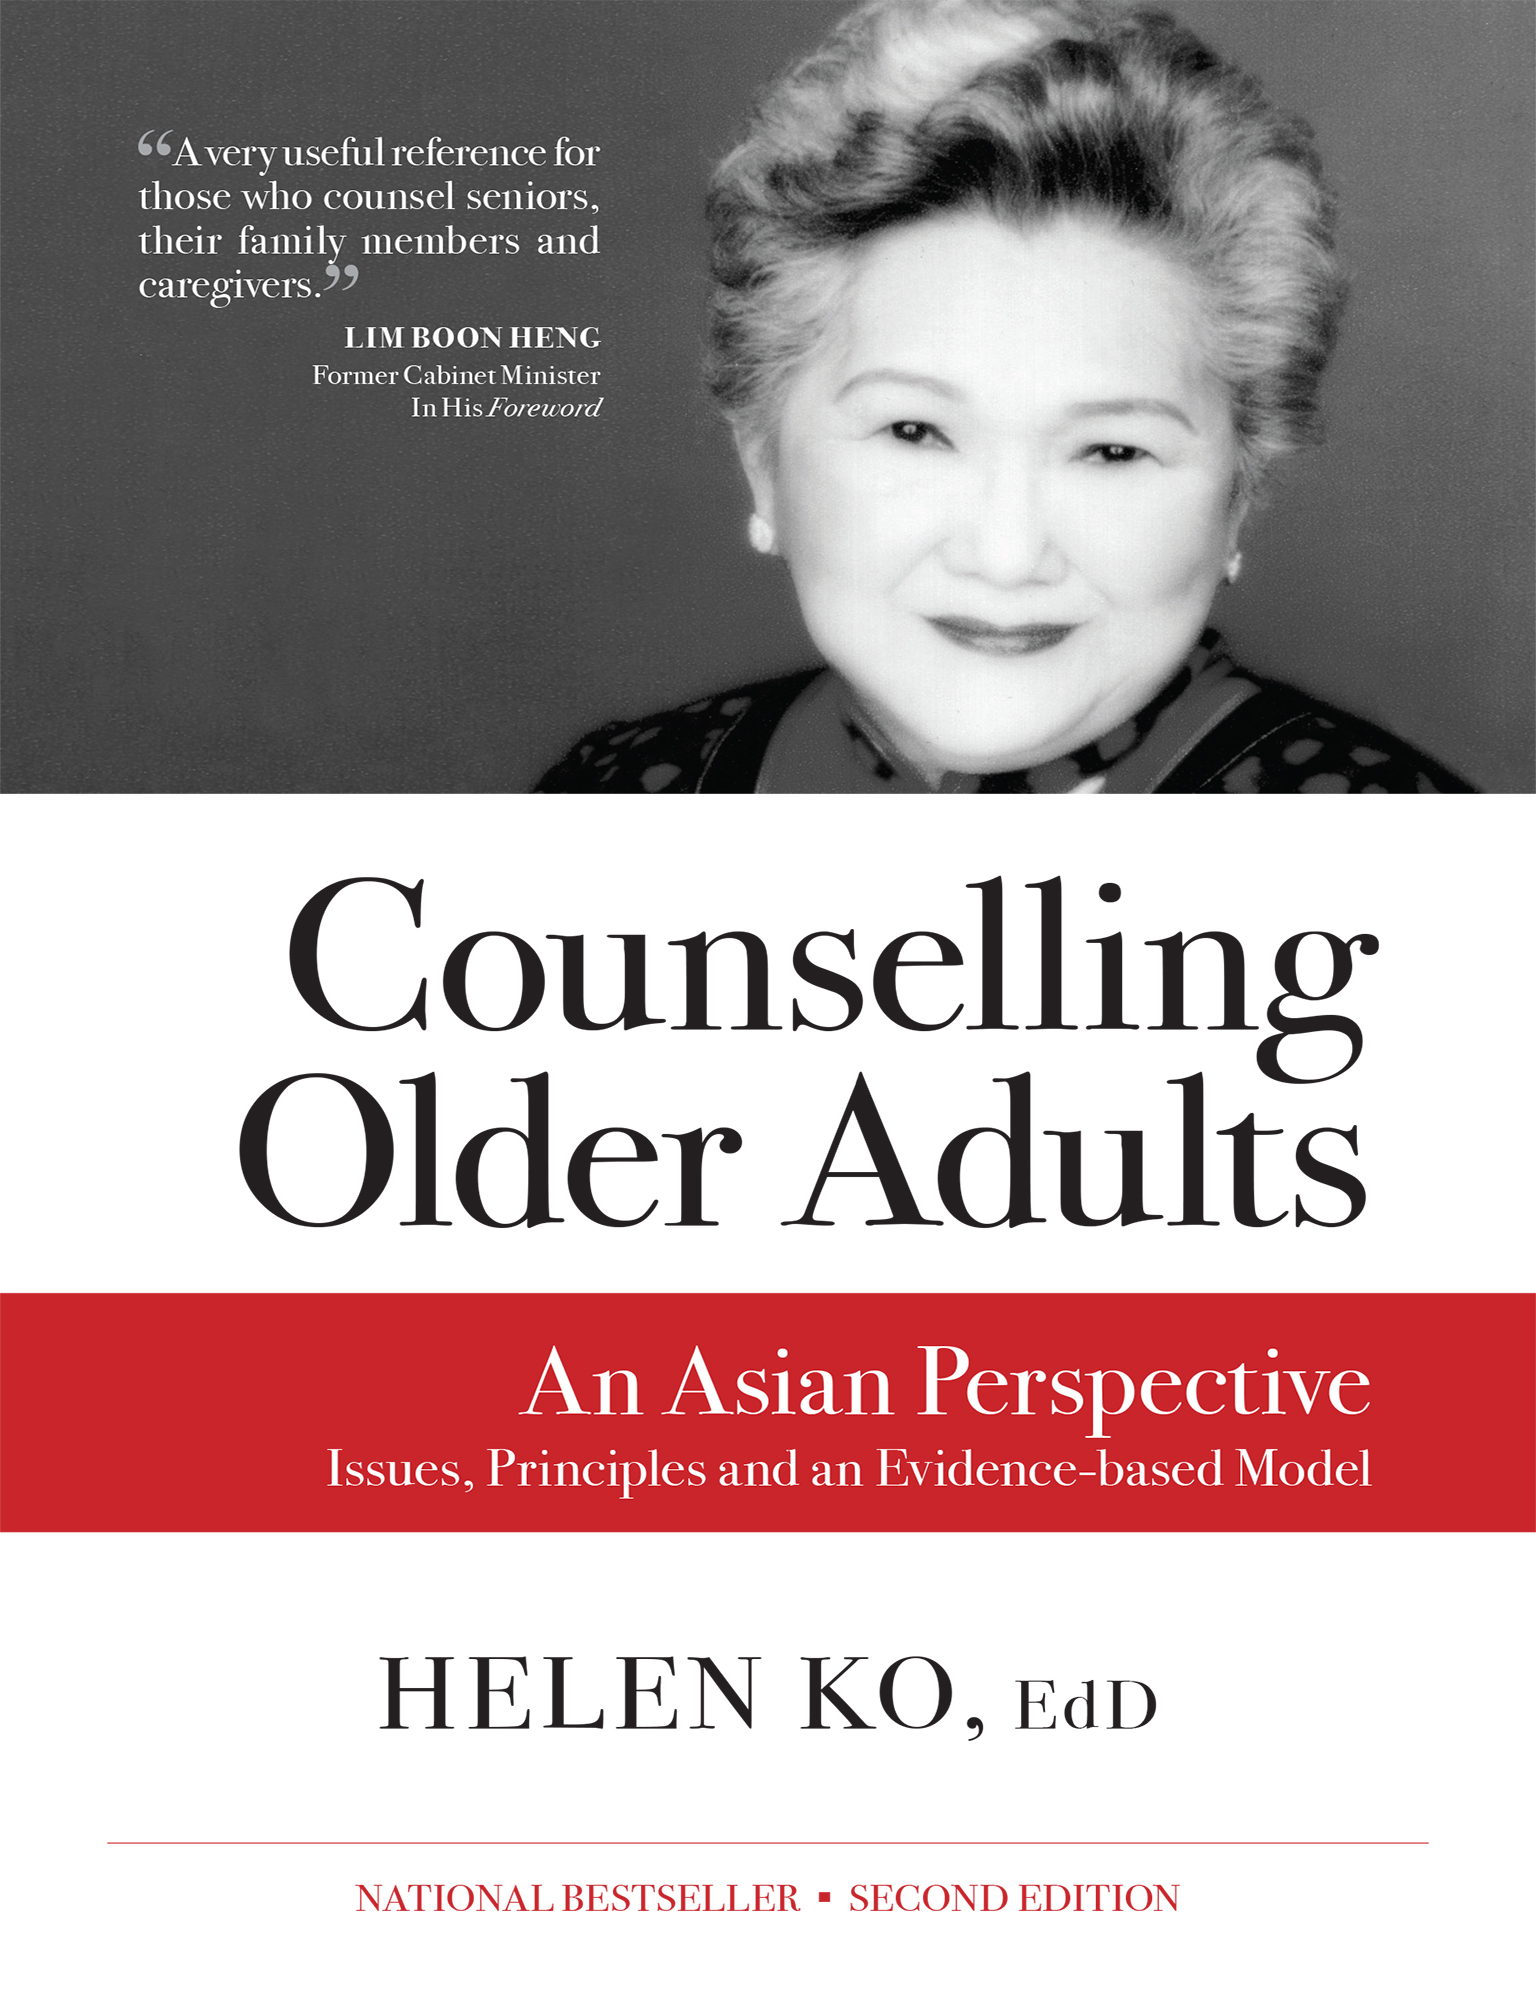 Counselling Older Adults (2nd Edition 2020)